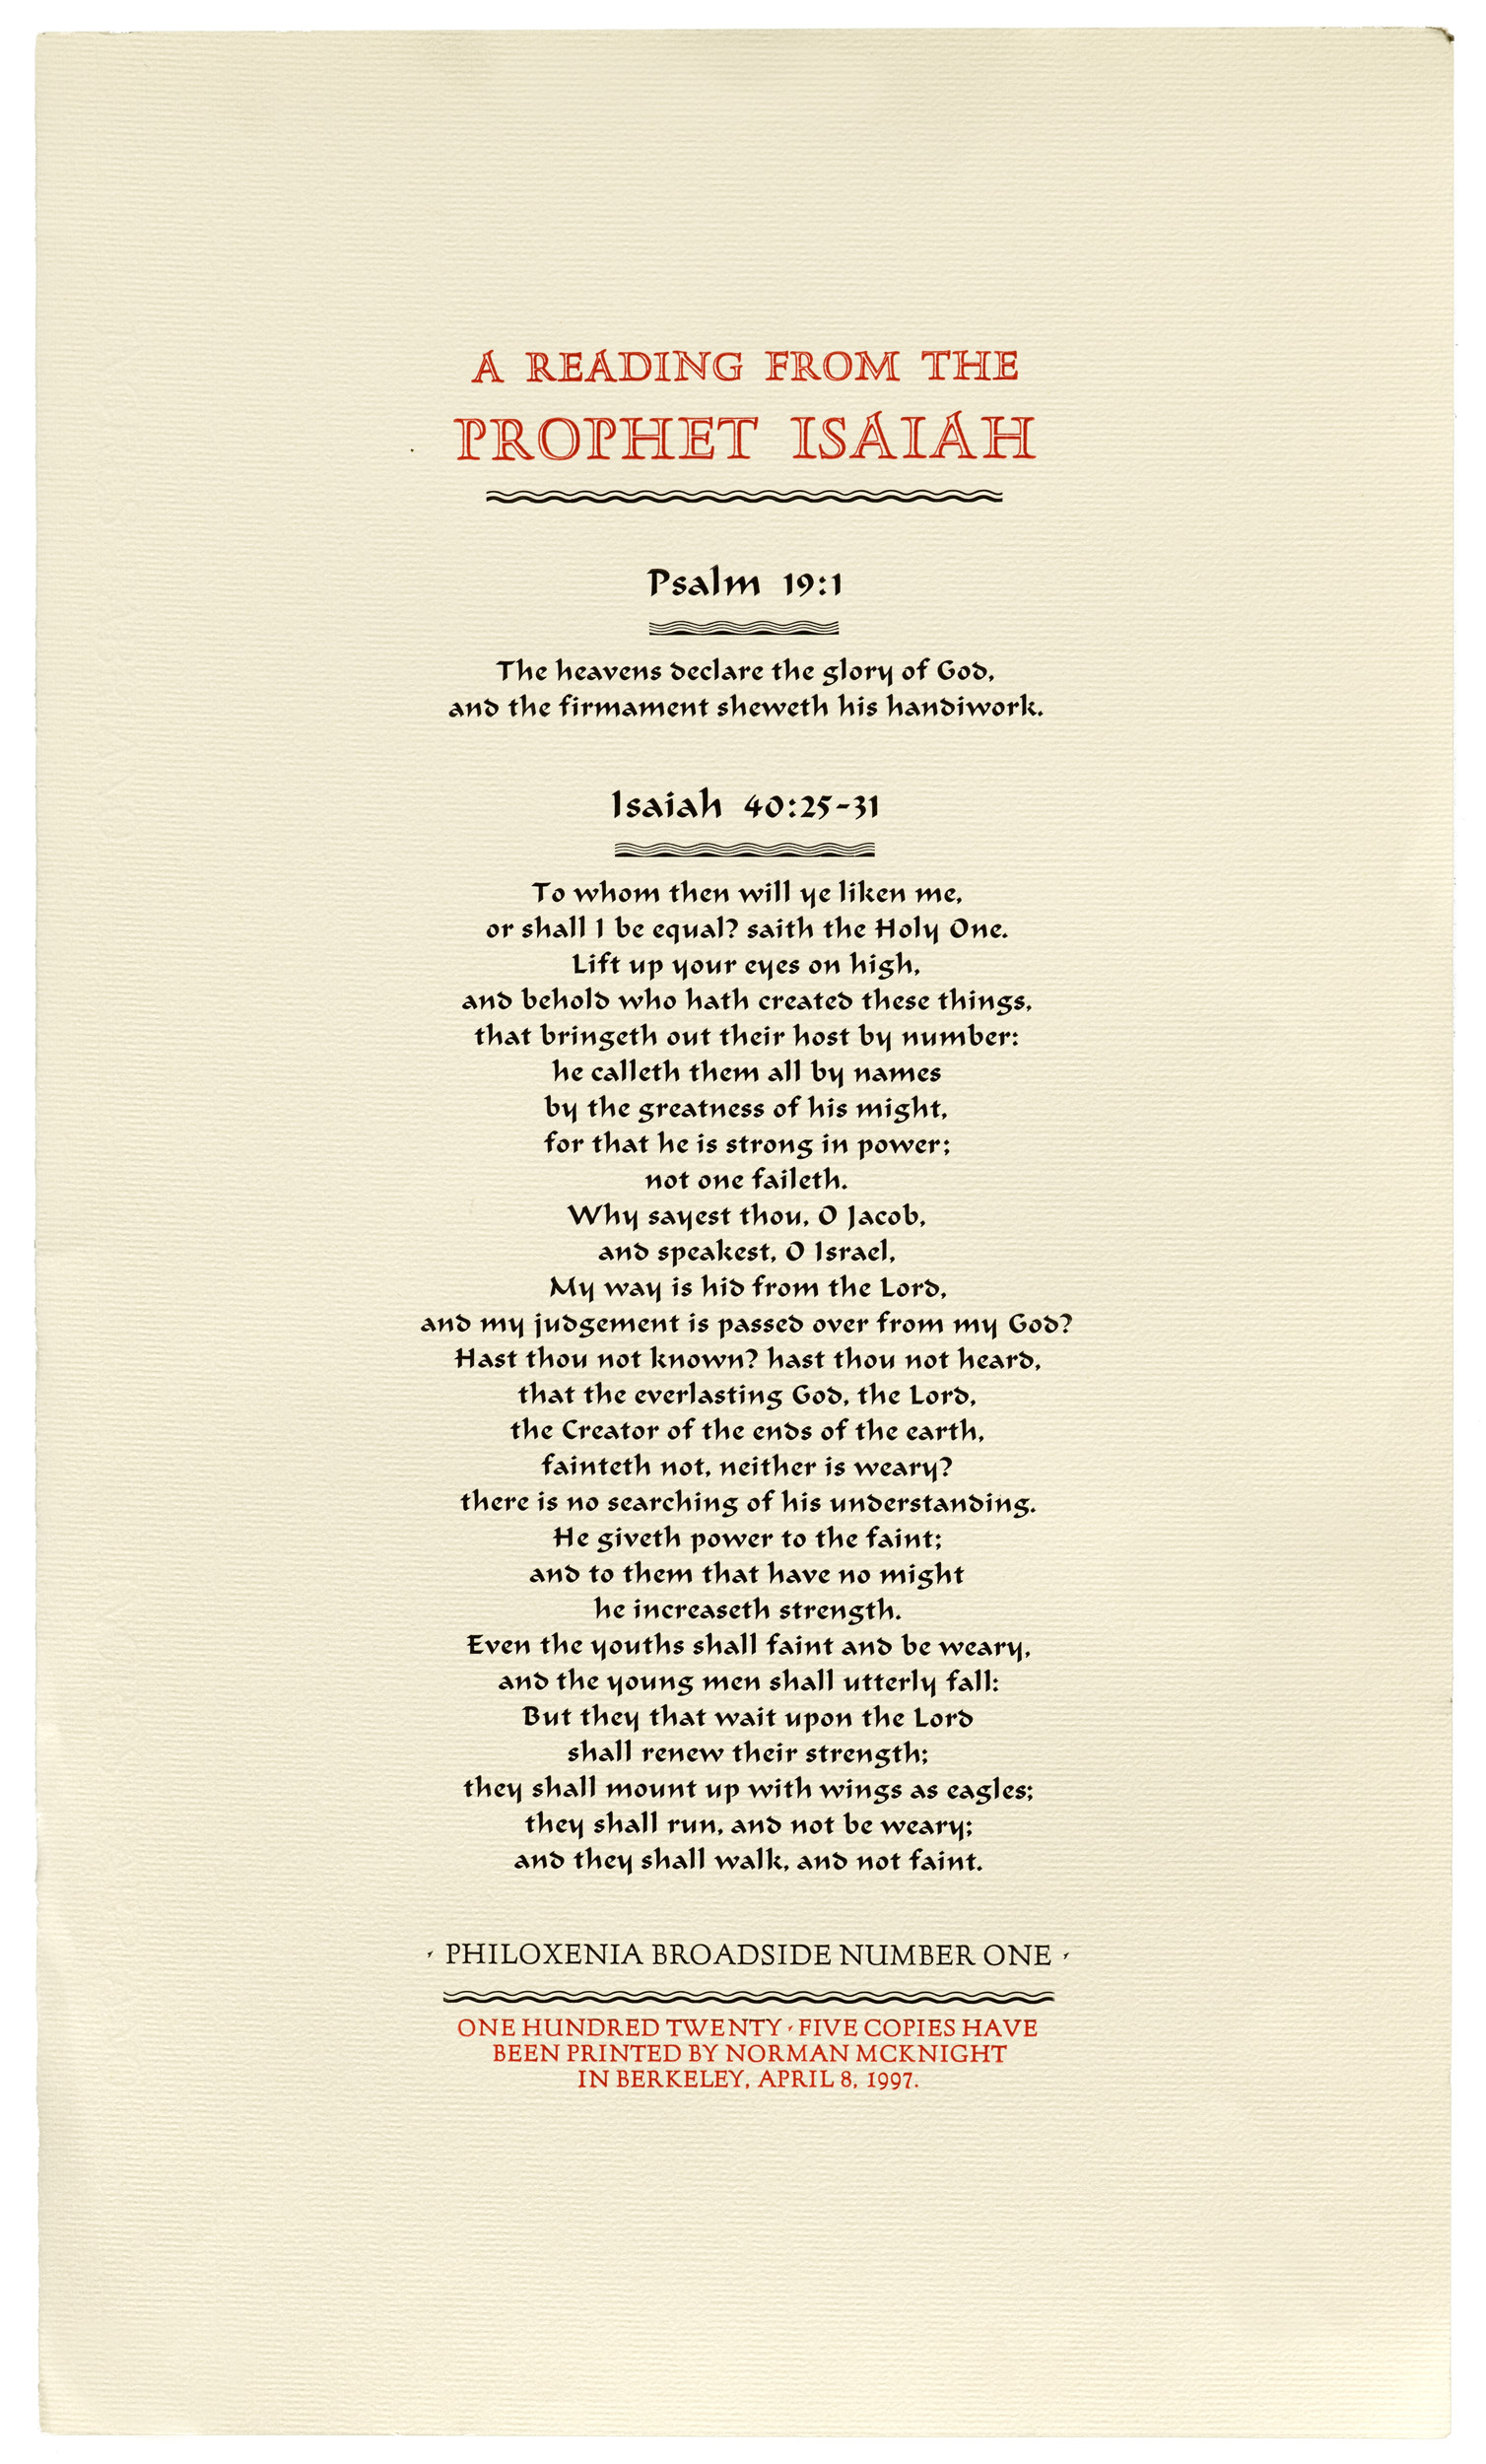 Broadside. The Prophet Isaiah. 40:25-31; 2:1-7. 18 point Ondine, Adrian Frutiger, 1954. Size 11.5 x 19.5.